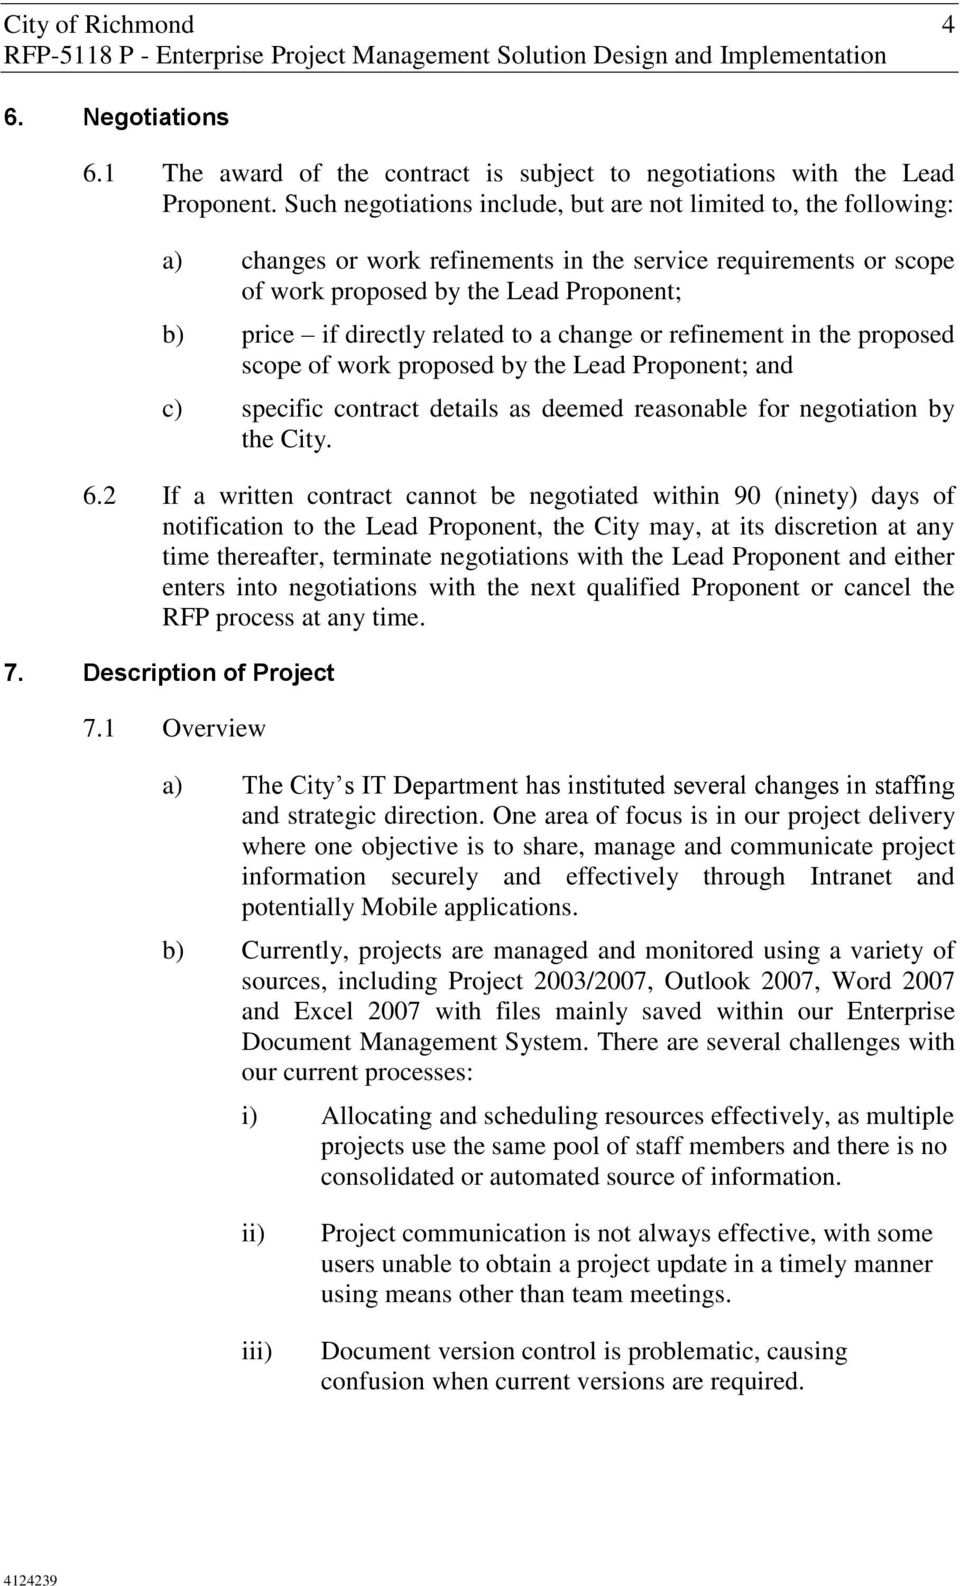 related to a change or refinement in the proposed scope of work proposed by the Lead Proponent; and c) specific contract details as deemed reasonable for negotiation by the City. 6.